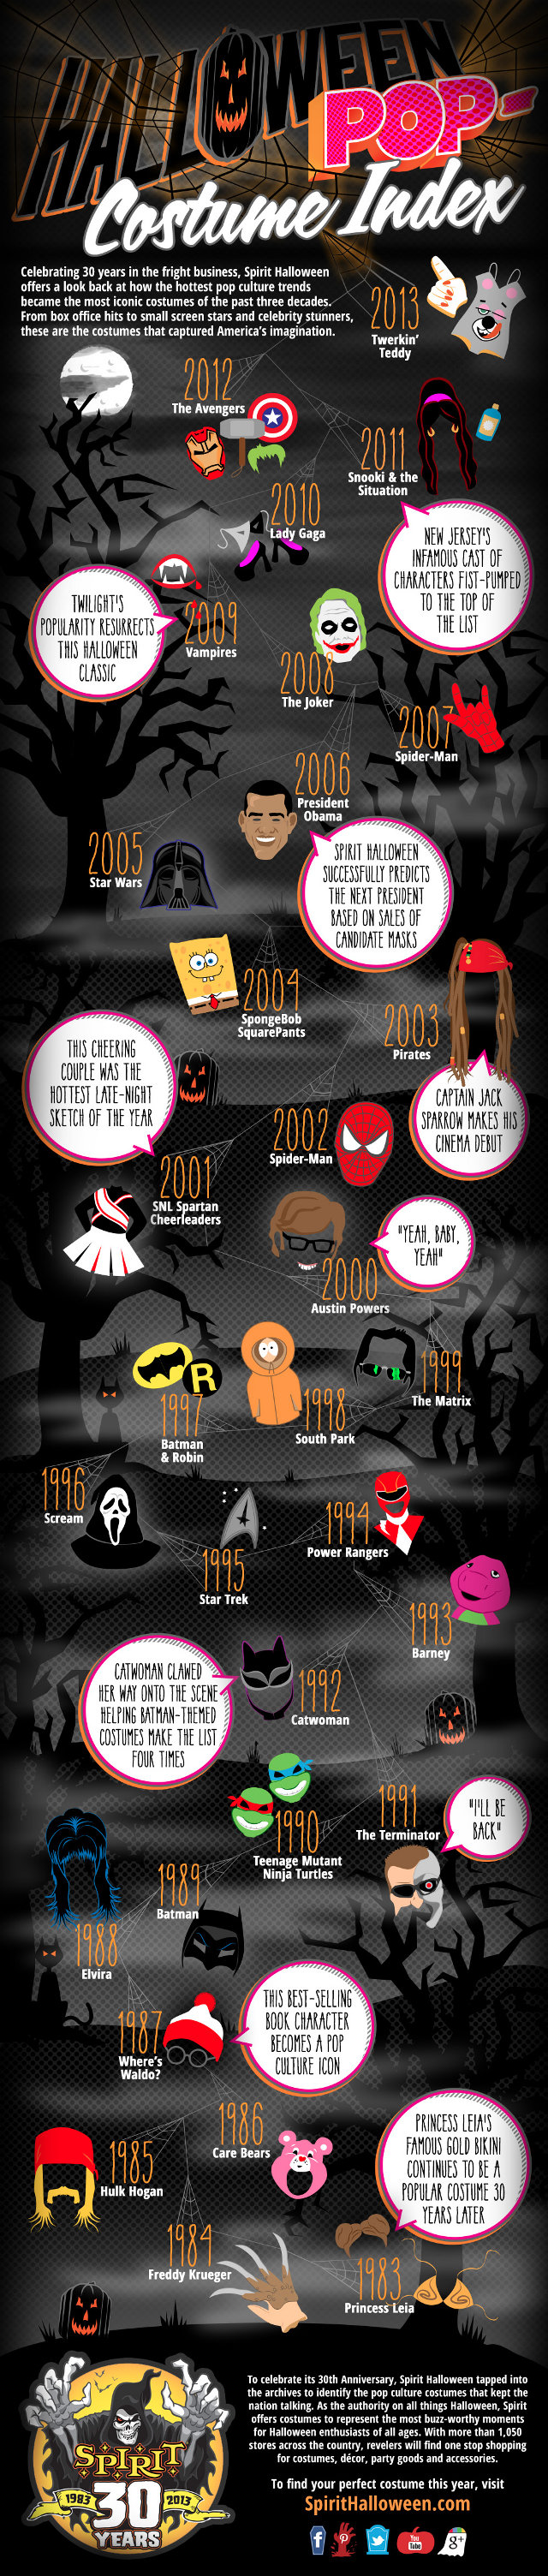 most-popular-halloween-costumes.jpg